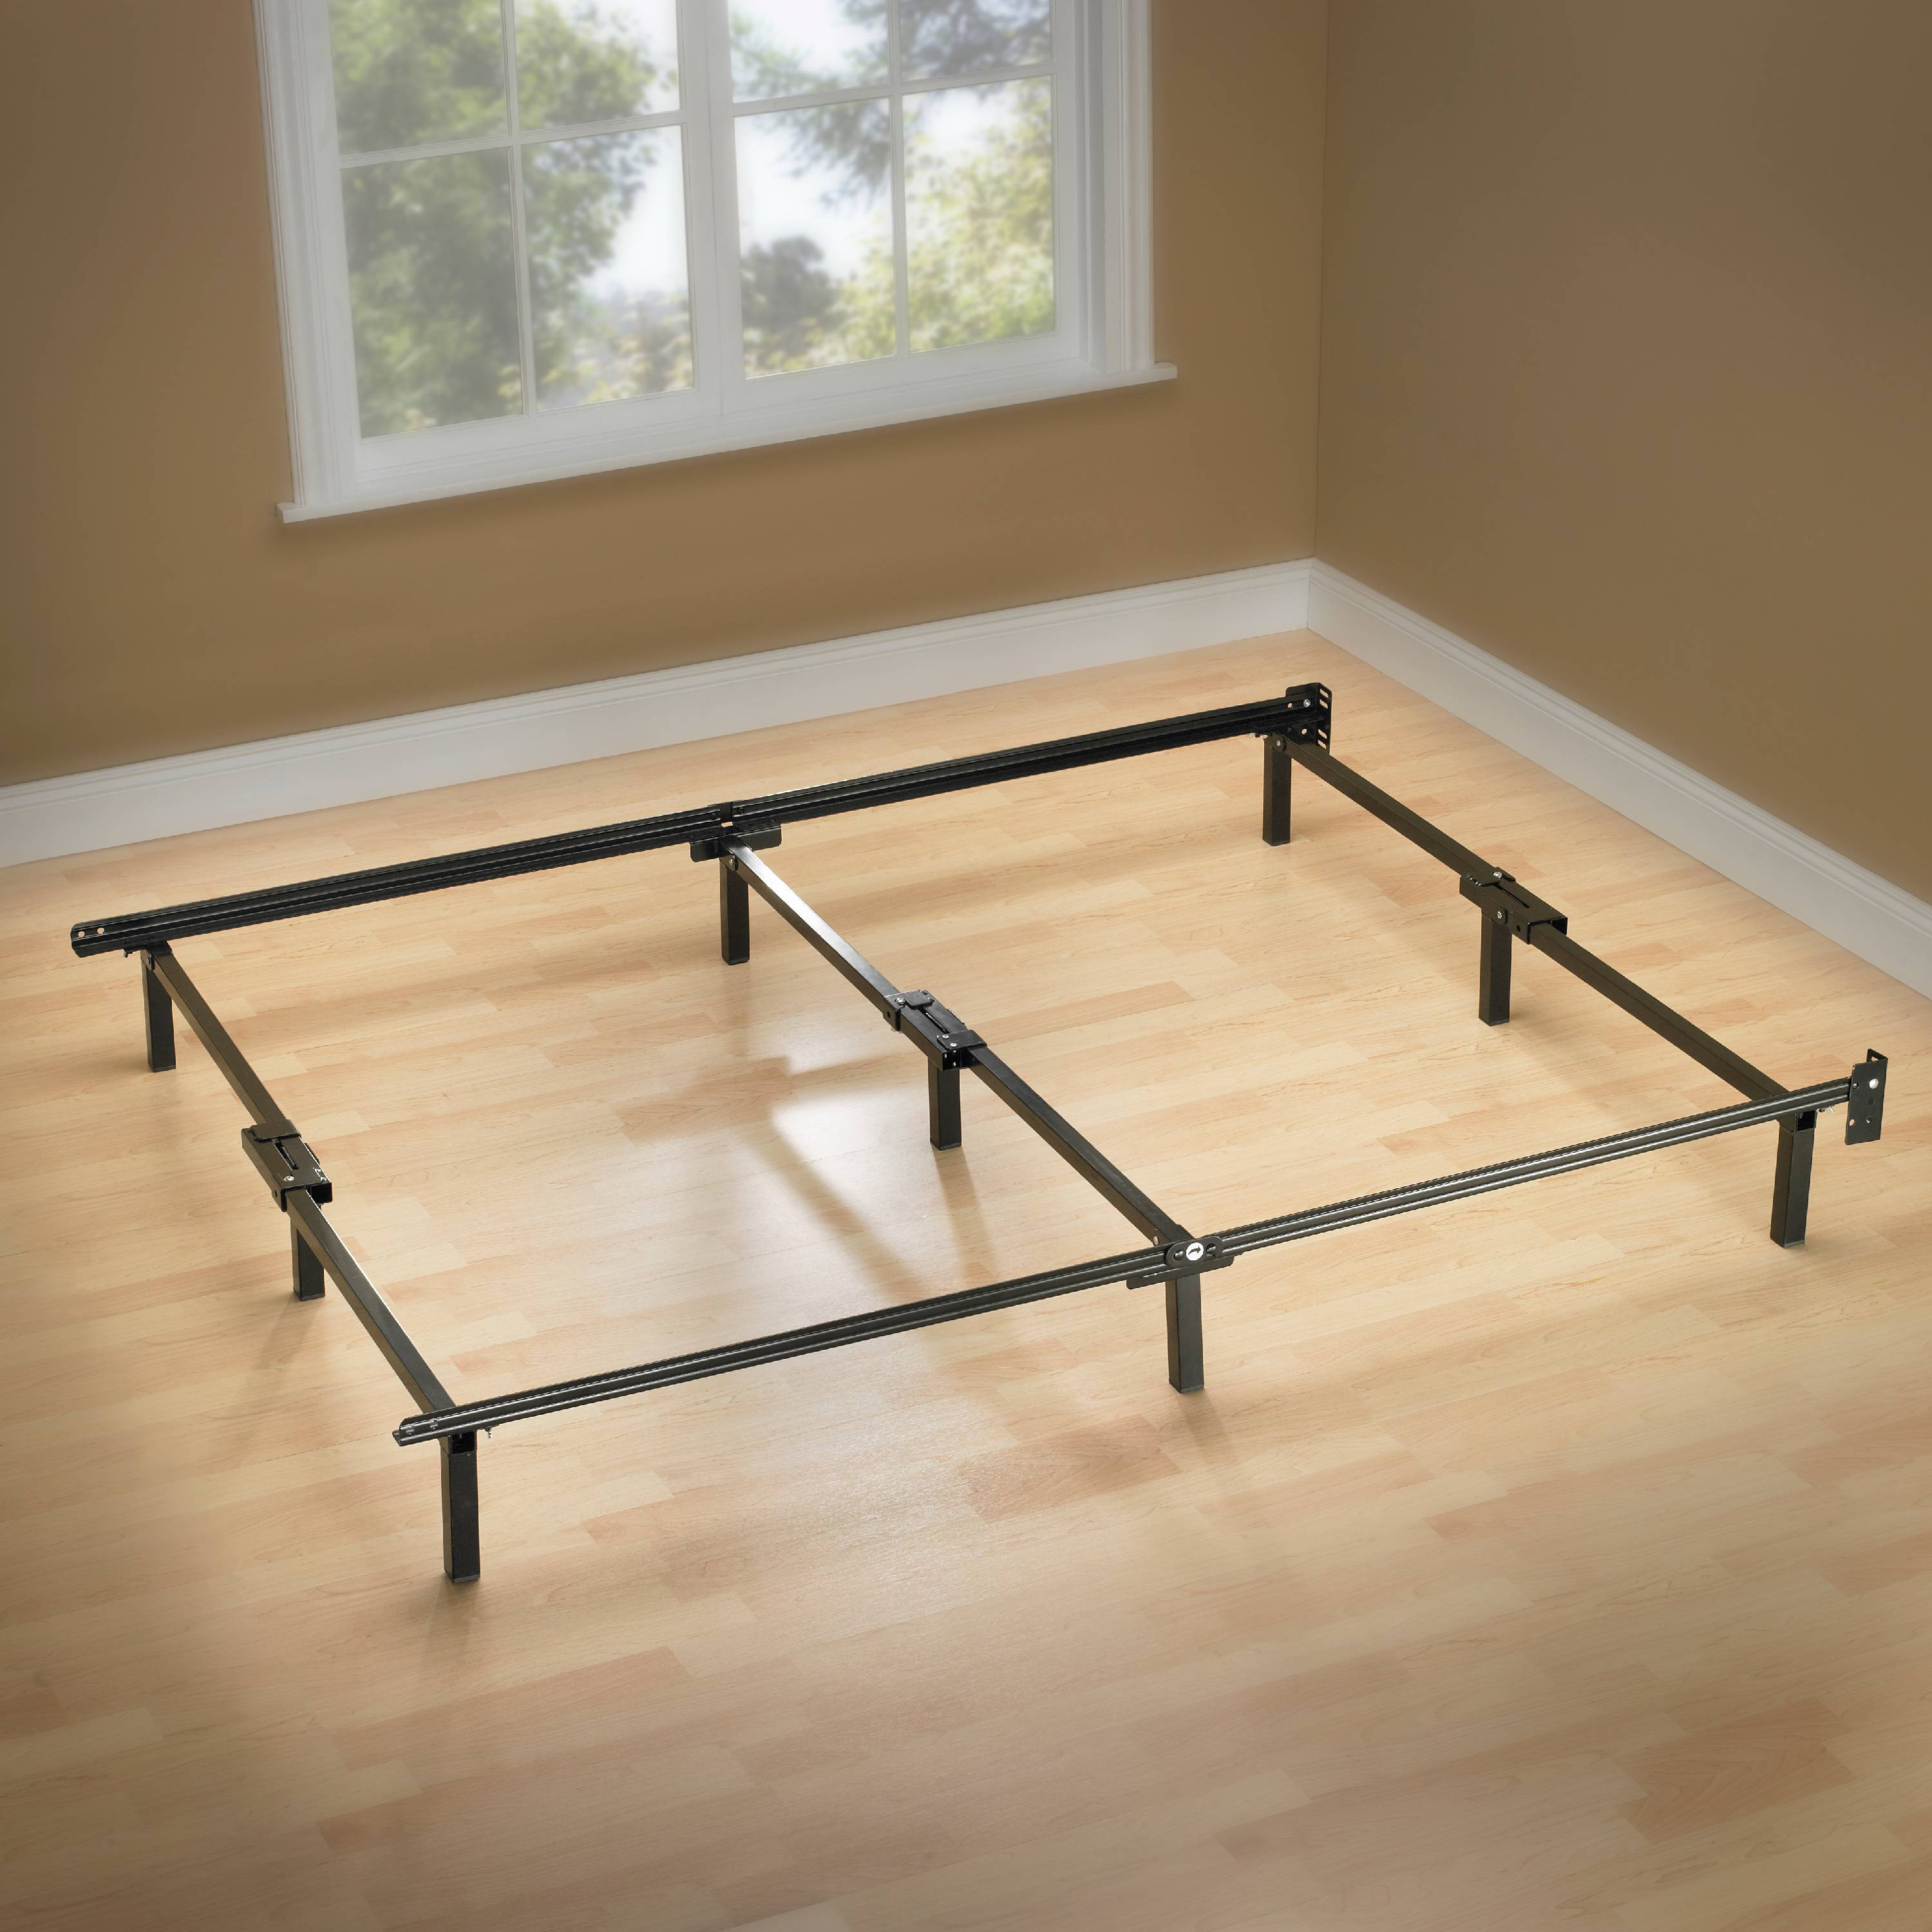 Spectacular Zinus Low Profile Adjustable Steel Bed Frame Easy No Tools Assembly Multiple Sizes